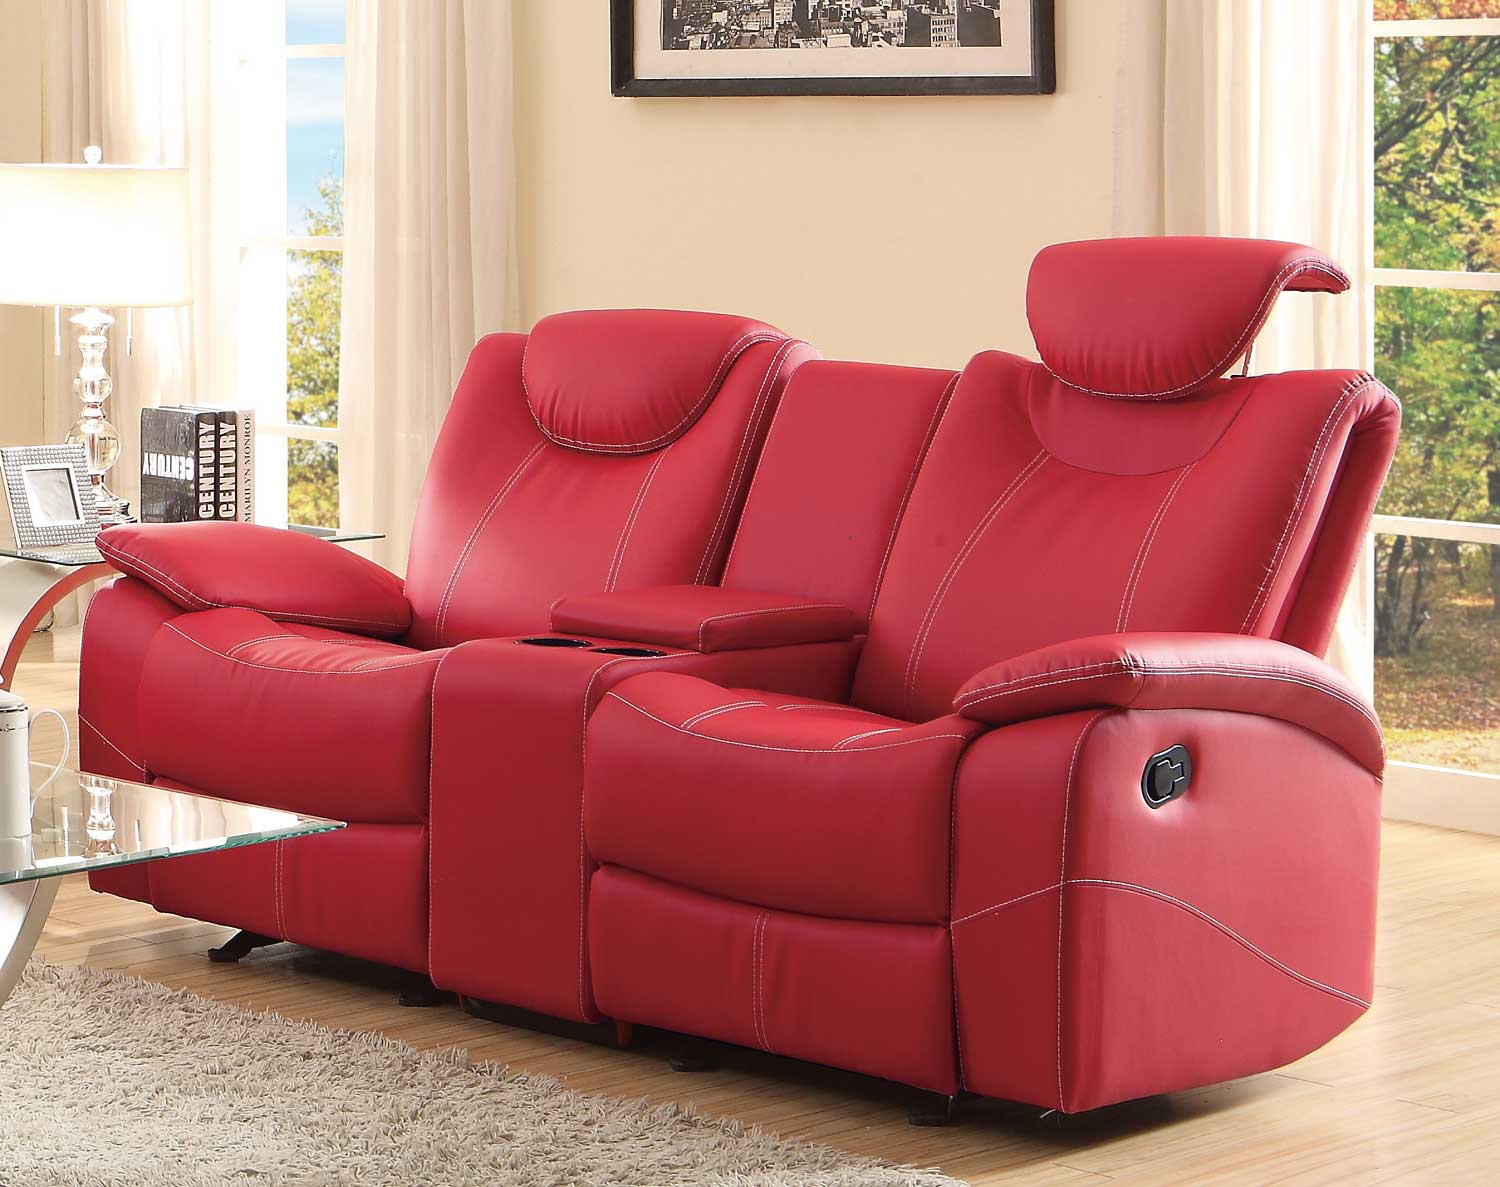 Homelegance talbot double glider reclining love seat with center console red bonded leather Reclining loveseat with center console